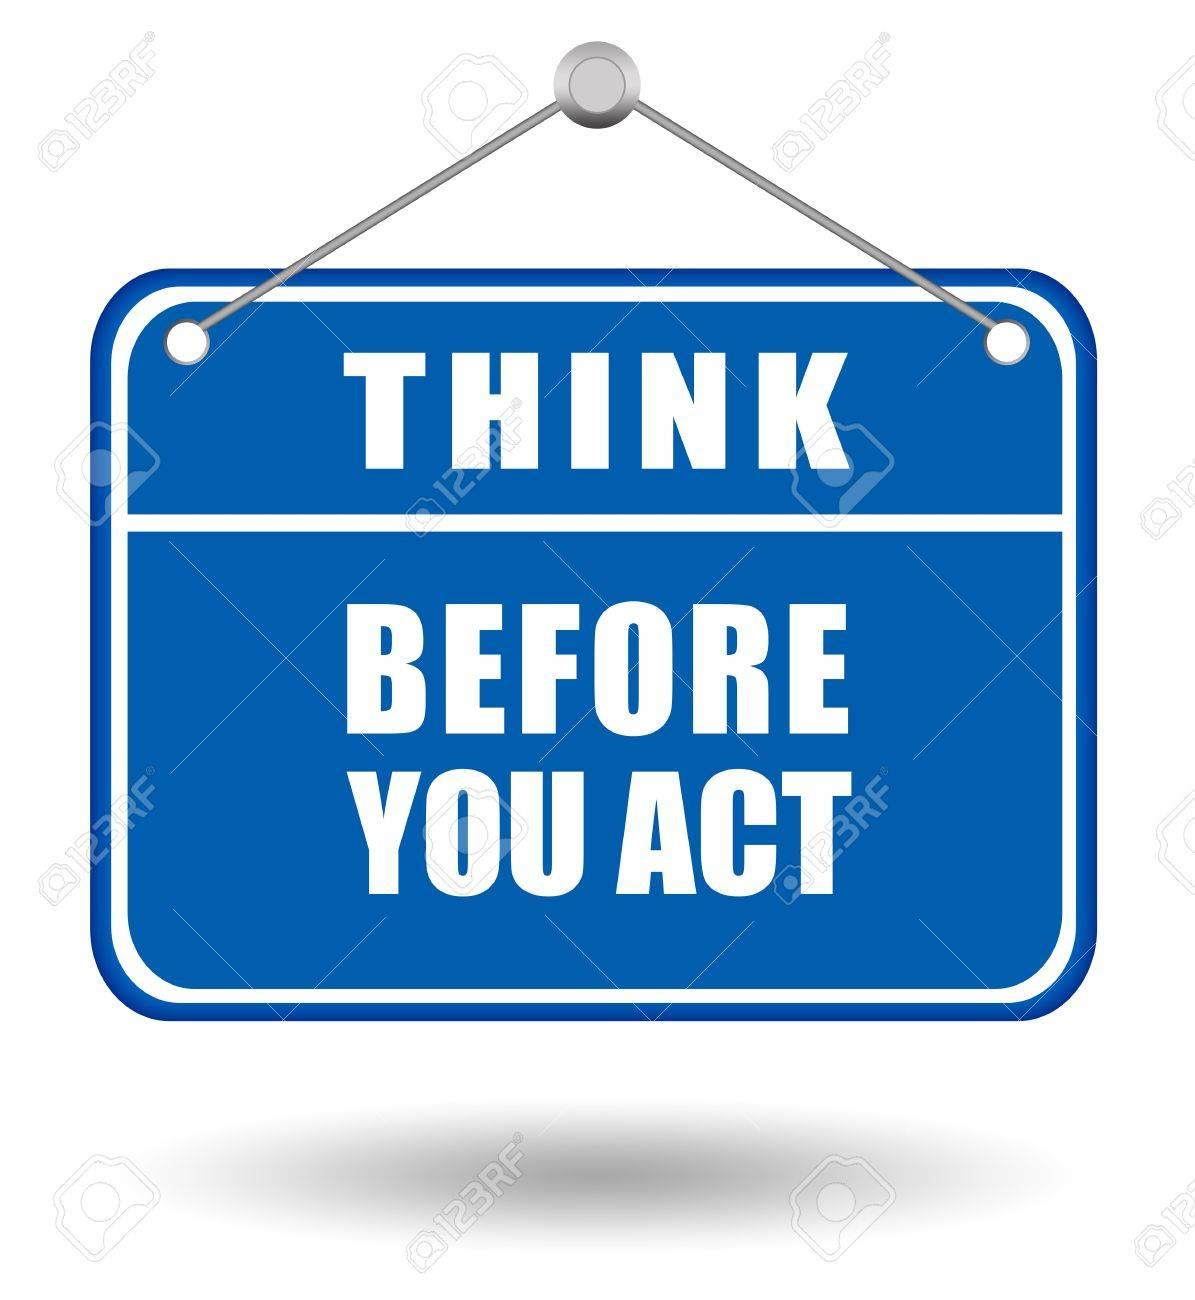 Think before you act sign Stock Photo - 10101136